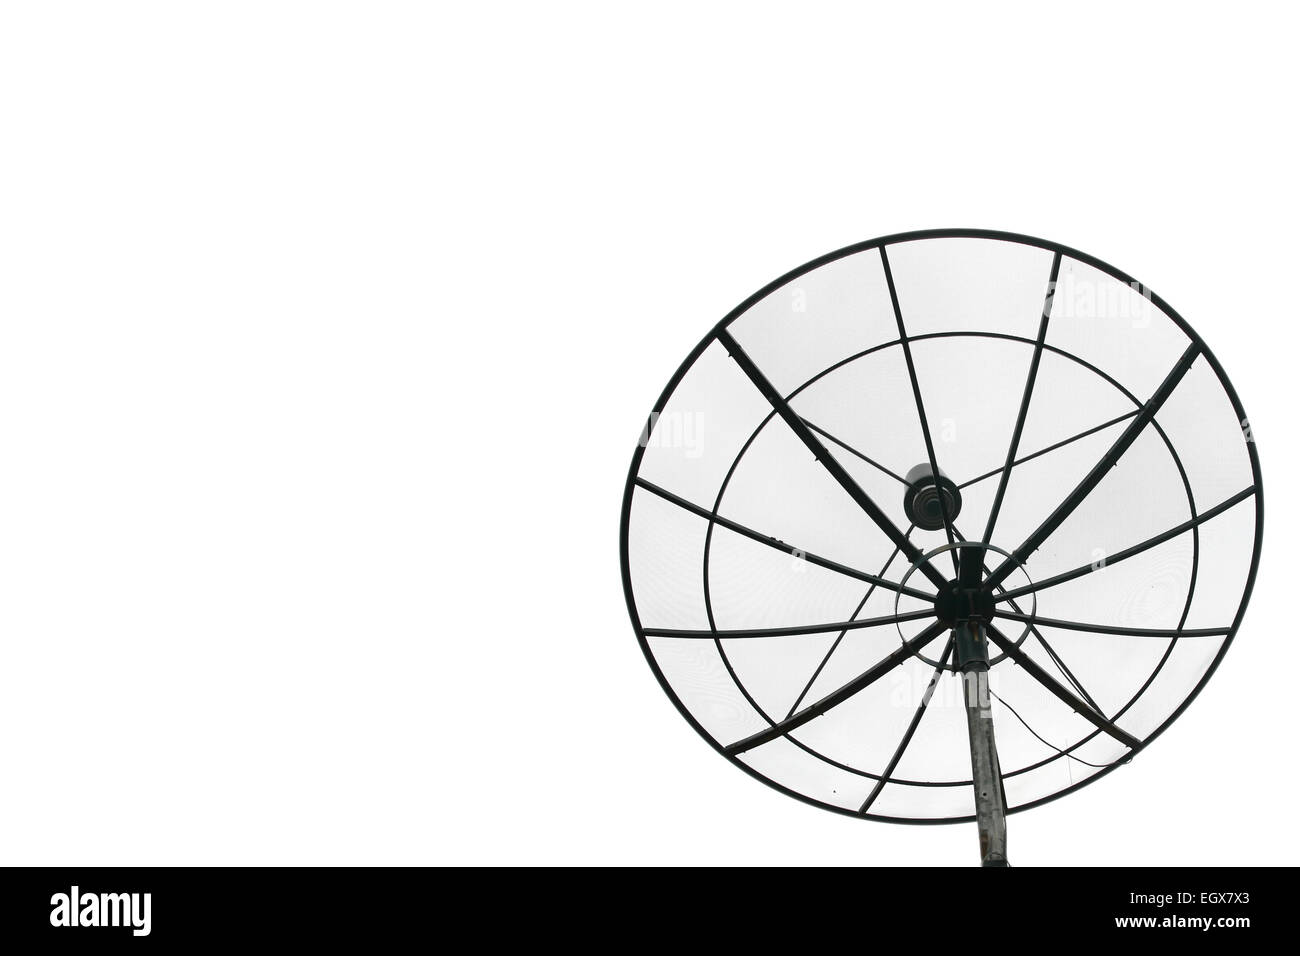 Big Black satellite isoleted on Cloudless Sky - Stock Image